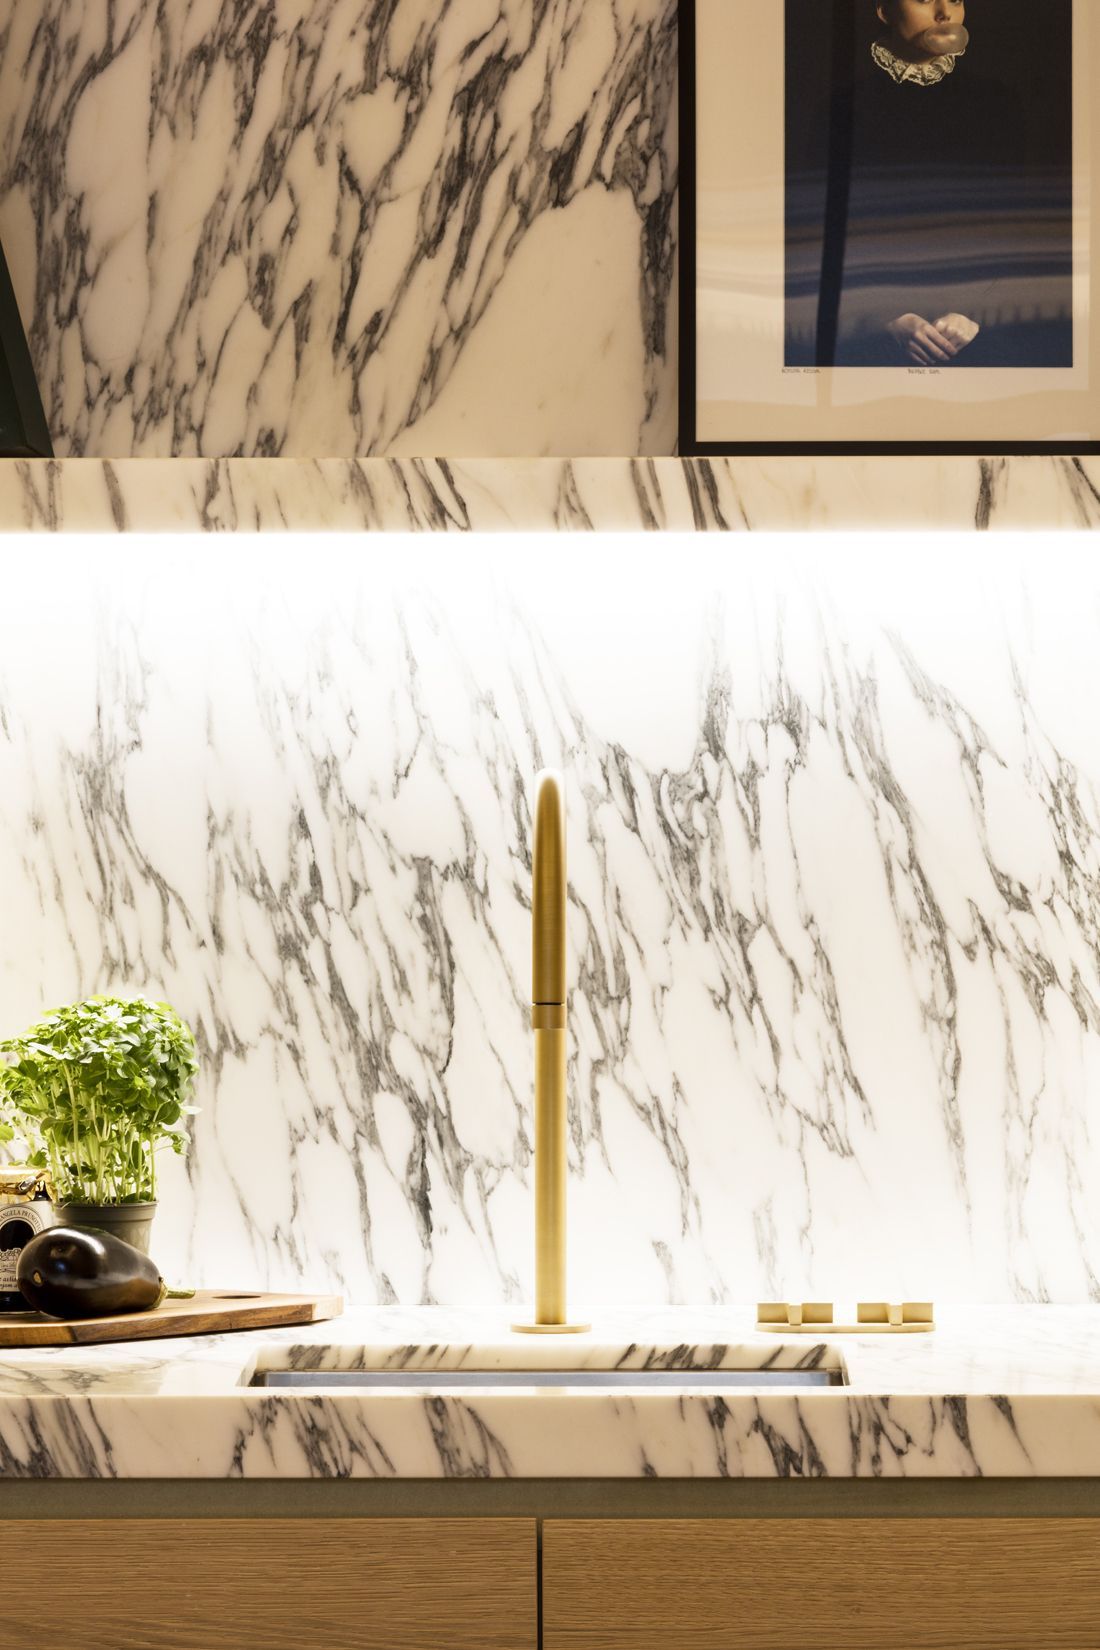 A Dramatically Marbled Stone Backsplash by Obumex | Kitchen ...